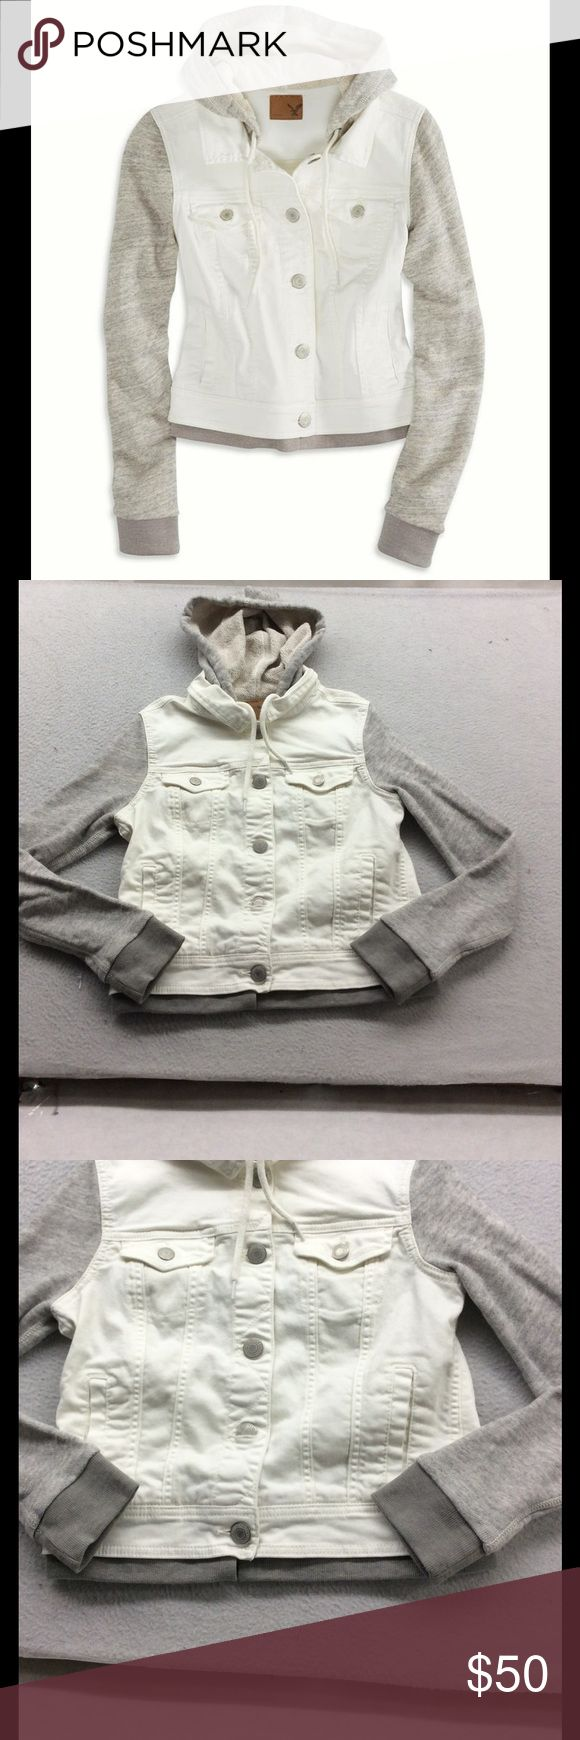 AEO Hoodie White Denim Vest Hybrid Jacket New New American Eagle Outfitters hybrid jacket. White denim vest with hoodie sleeves and draw string hood. P 44. American Eagle Outfitters Jackets & Coats